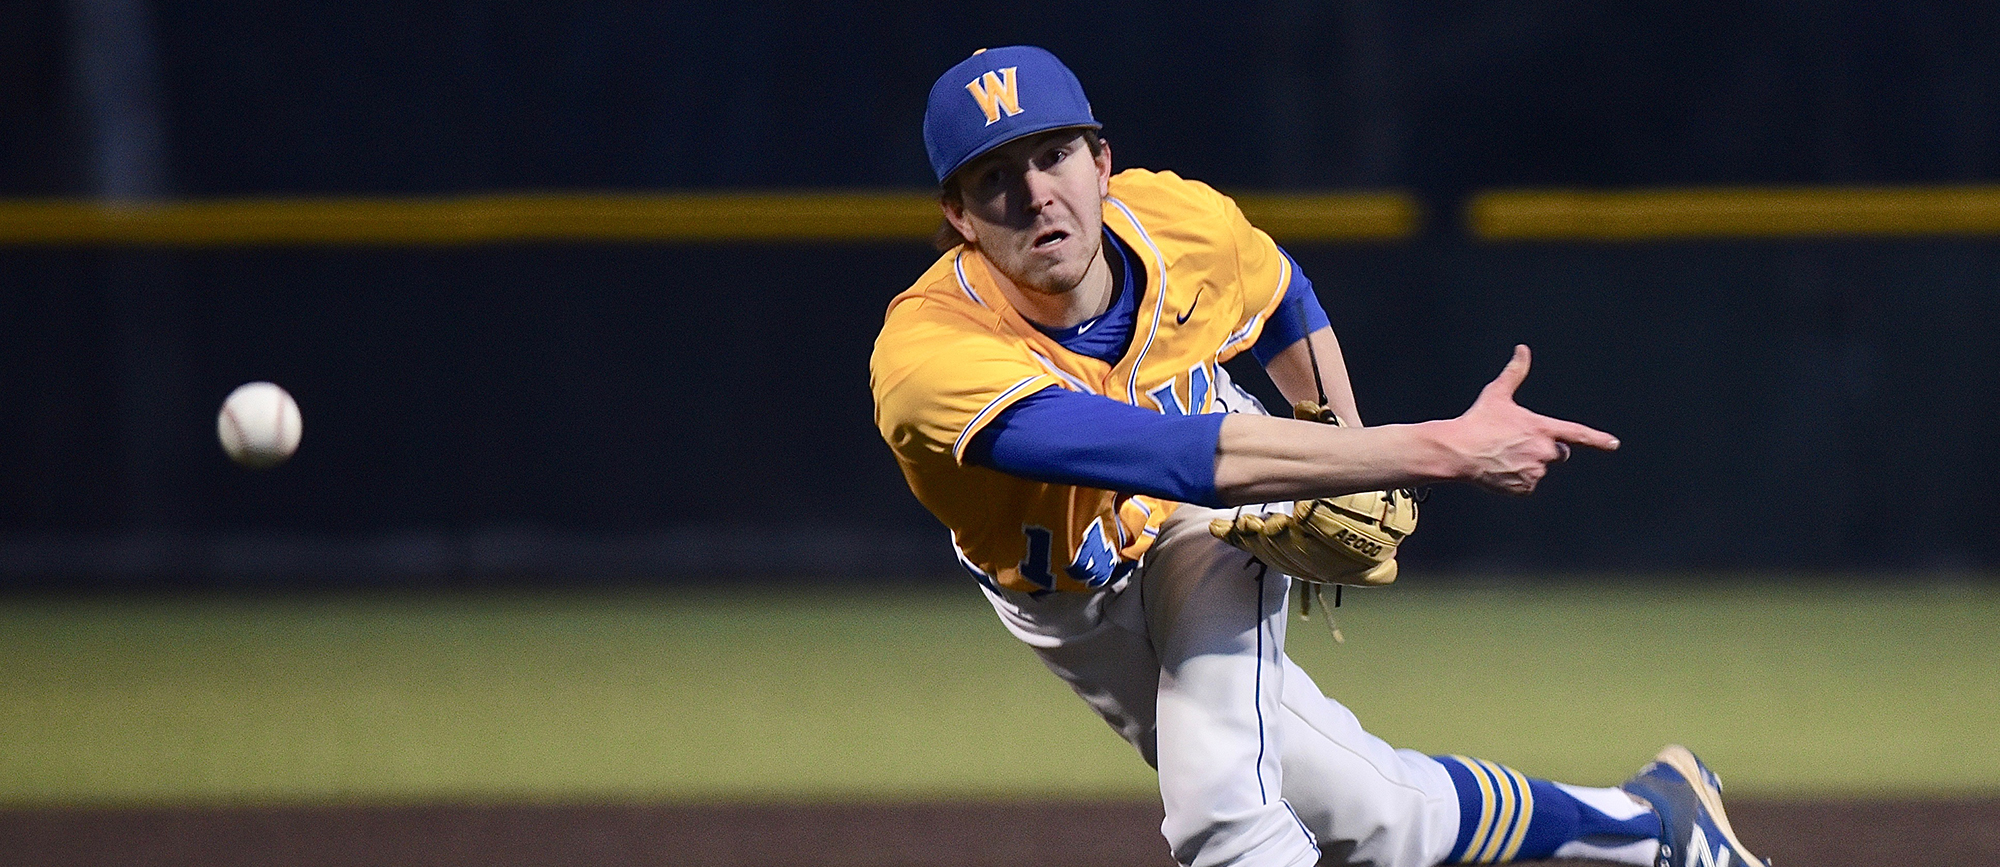 Junior Patrick Westerlind (1.1 IP, 0 ER) was among five Golden Bear pitchers that combined to shut out Case Western Reserve in Western New England's 2-0 win over the Spartans on Friday. (Photo by Jim Balderston)